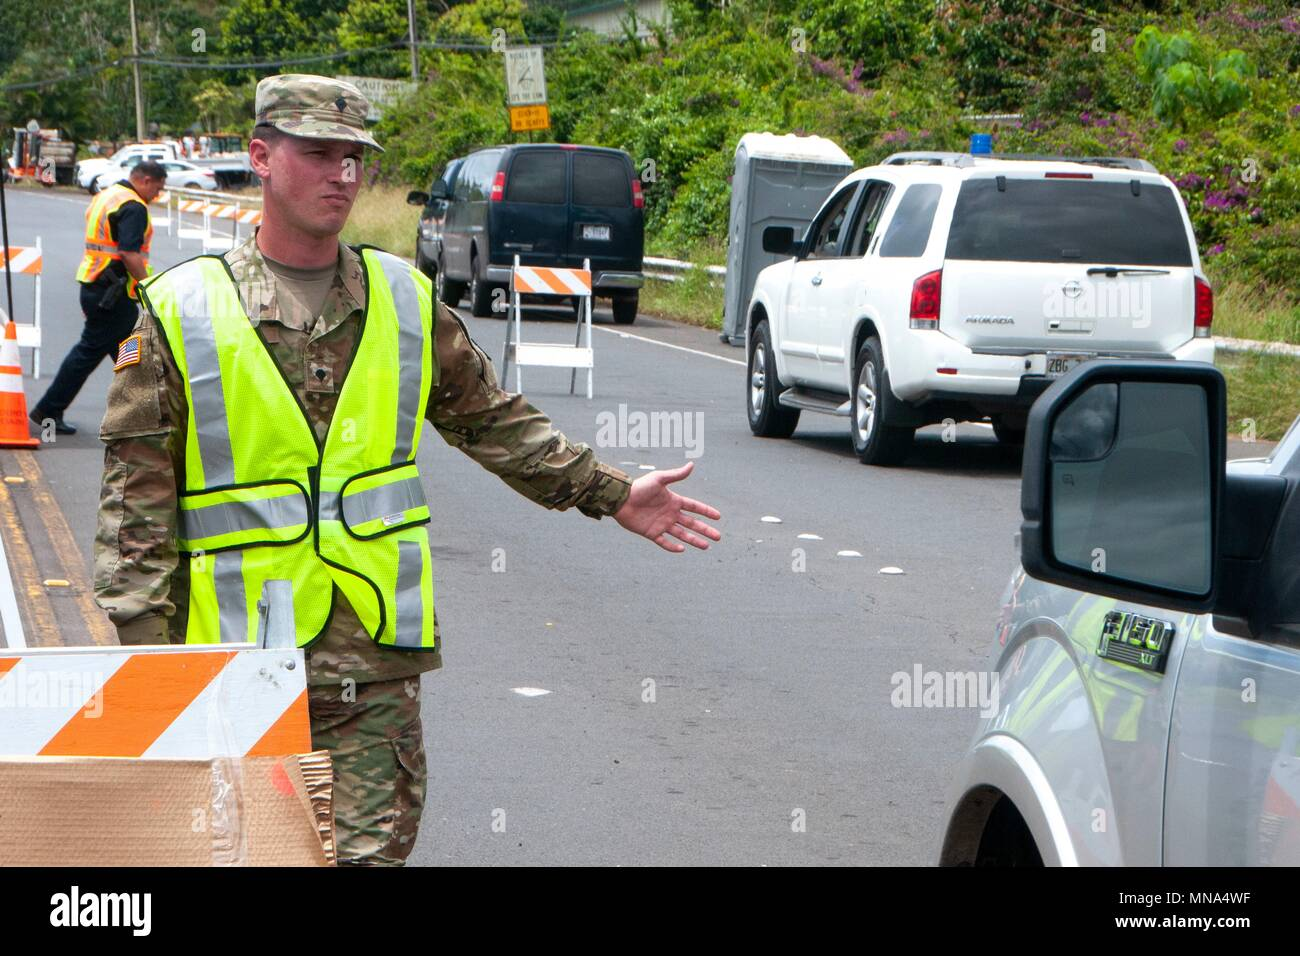 Air Force Spc Donavan Wills, a combat engineer with the 227th Brigade Engineer Battalion, directs traffic in response to the Kilauea volcano eruption at Leilani Estates May 12, 2018 in Pahoa, Hawaii. The recent eruption continues destroying homes, forcing evacuations and spewing lava and poison gas on the Big Island of Hawaii.Stock Photo